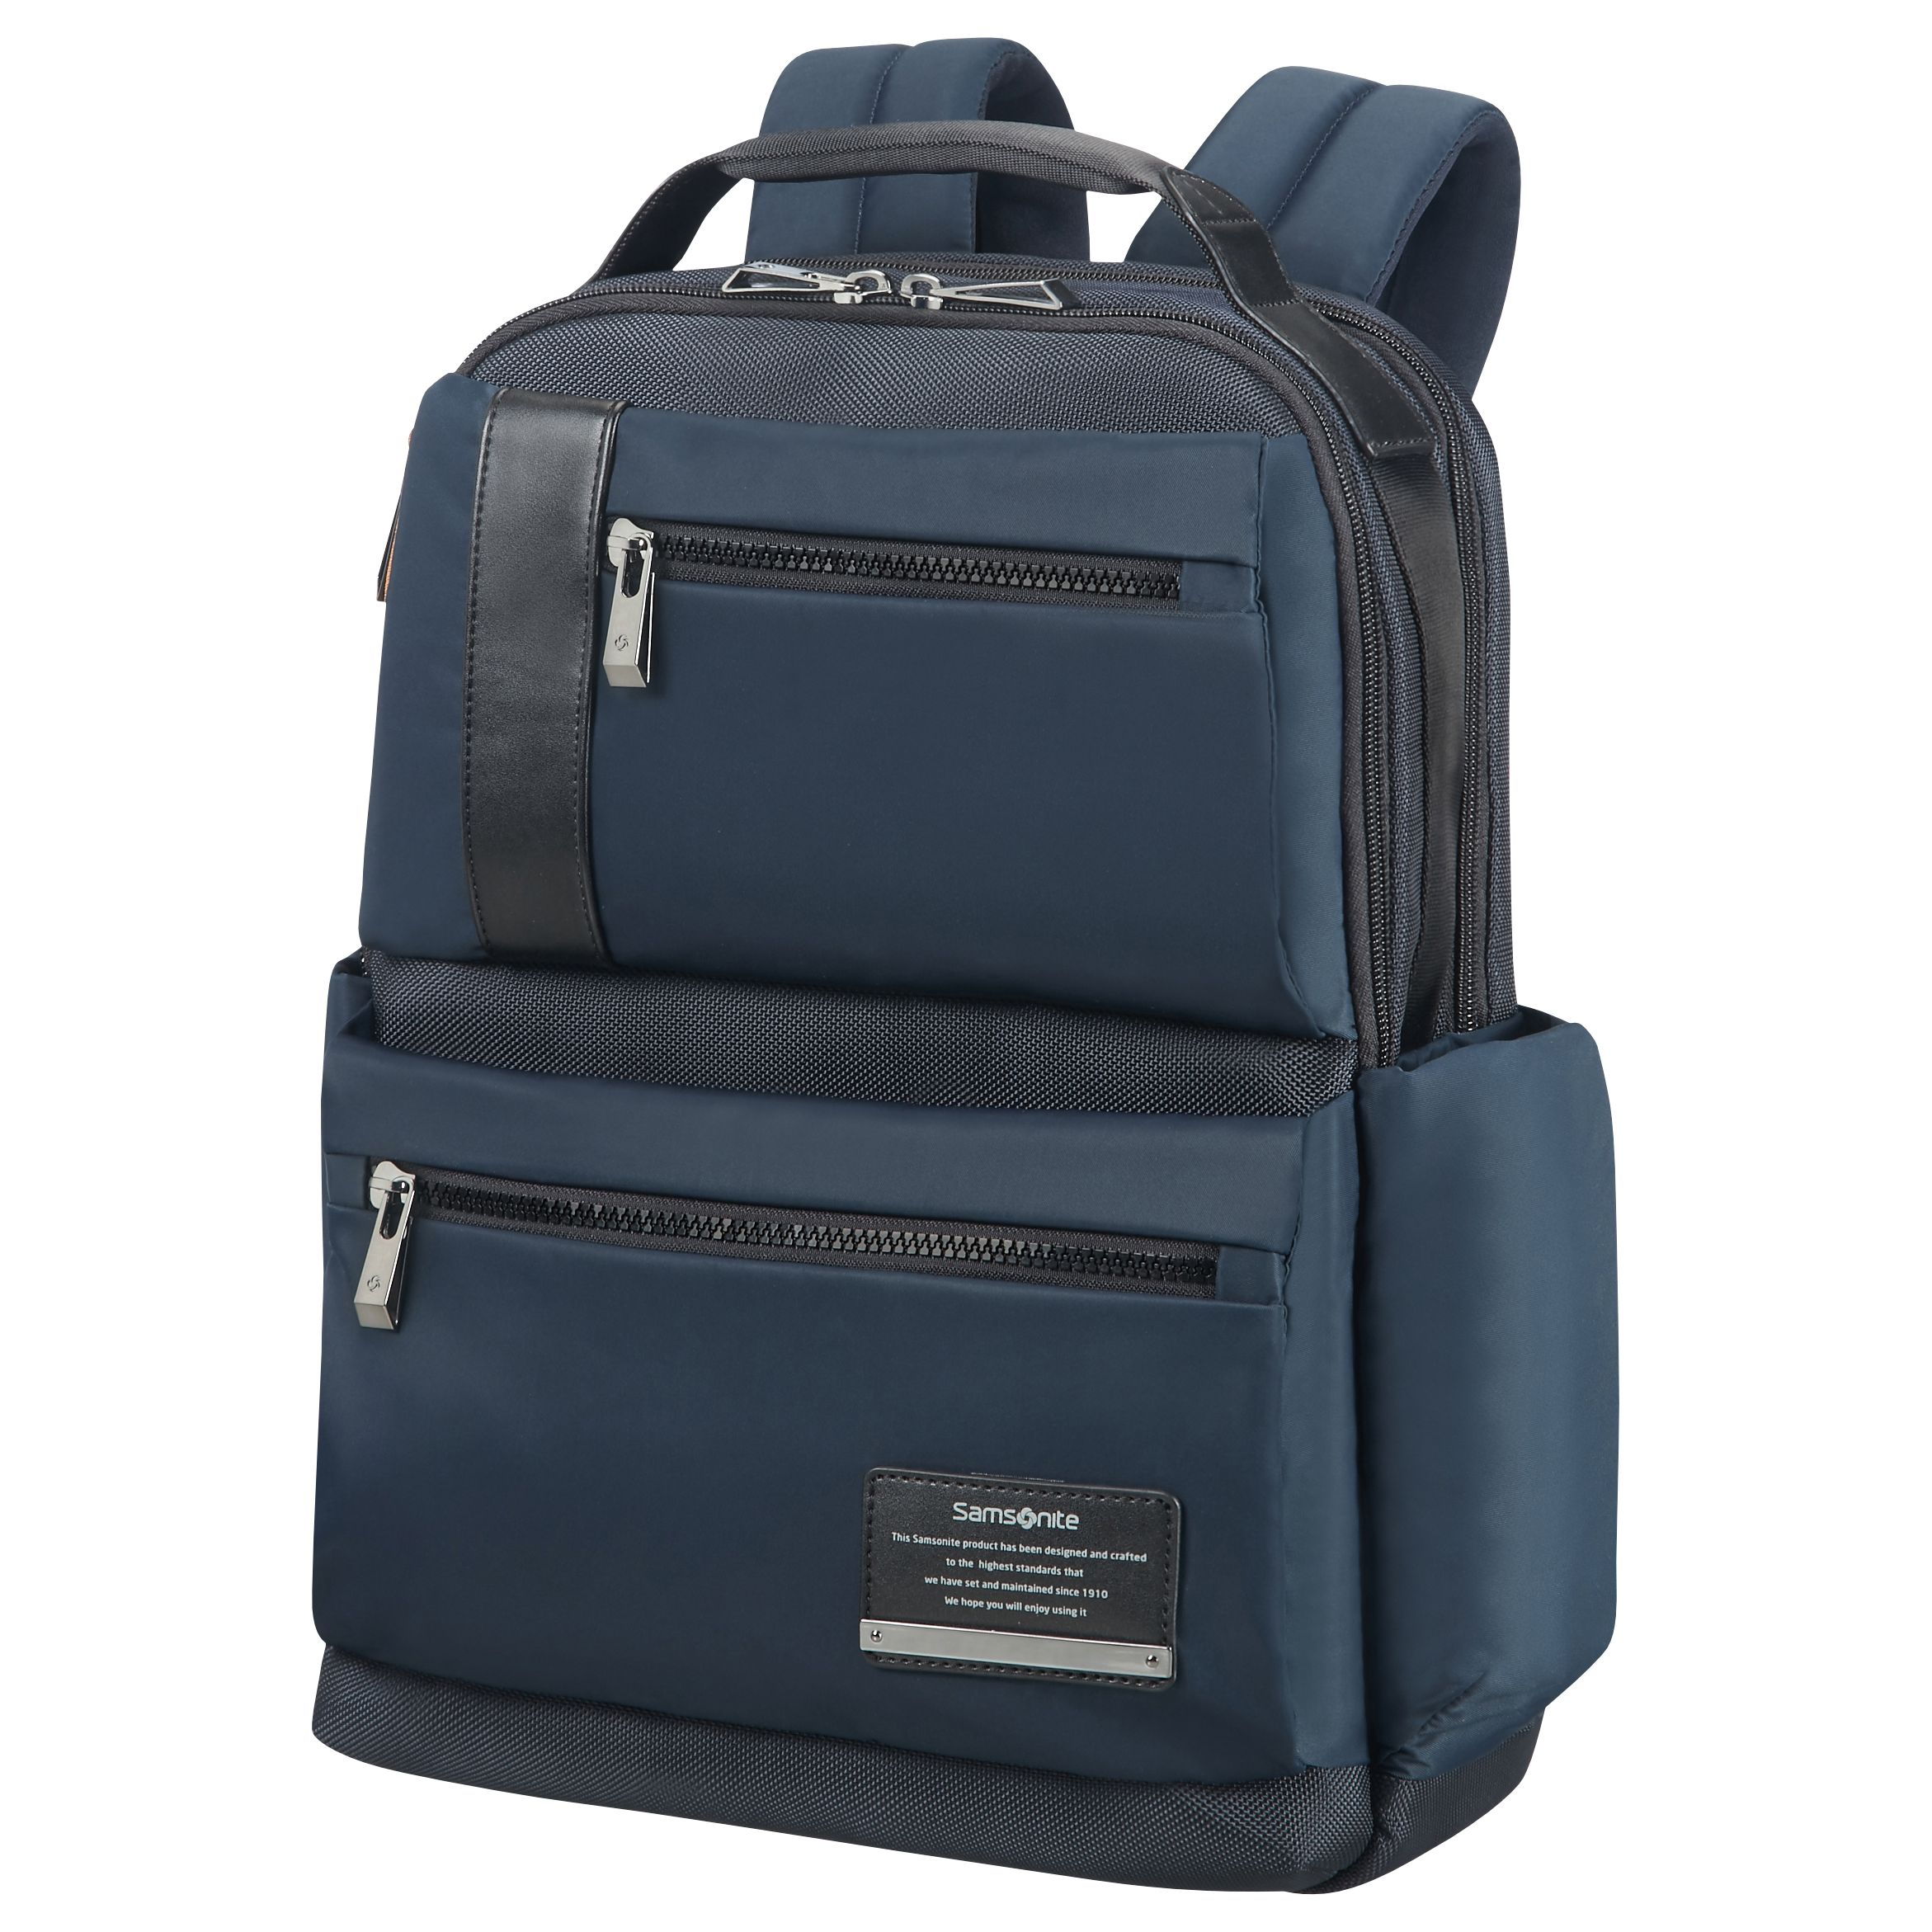 Samsonite Samsonite OpenRoad Laptop Backpack 14.1, Space Blue